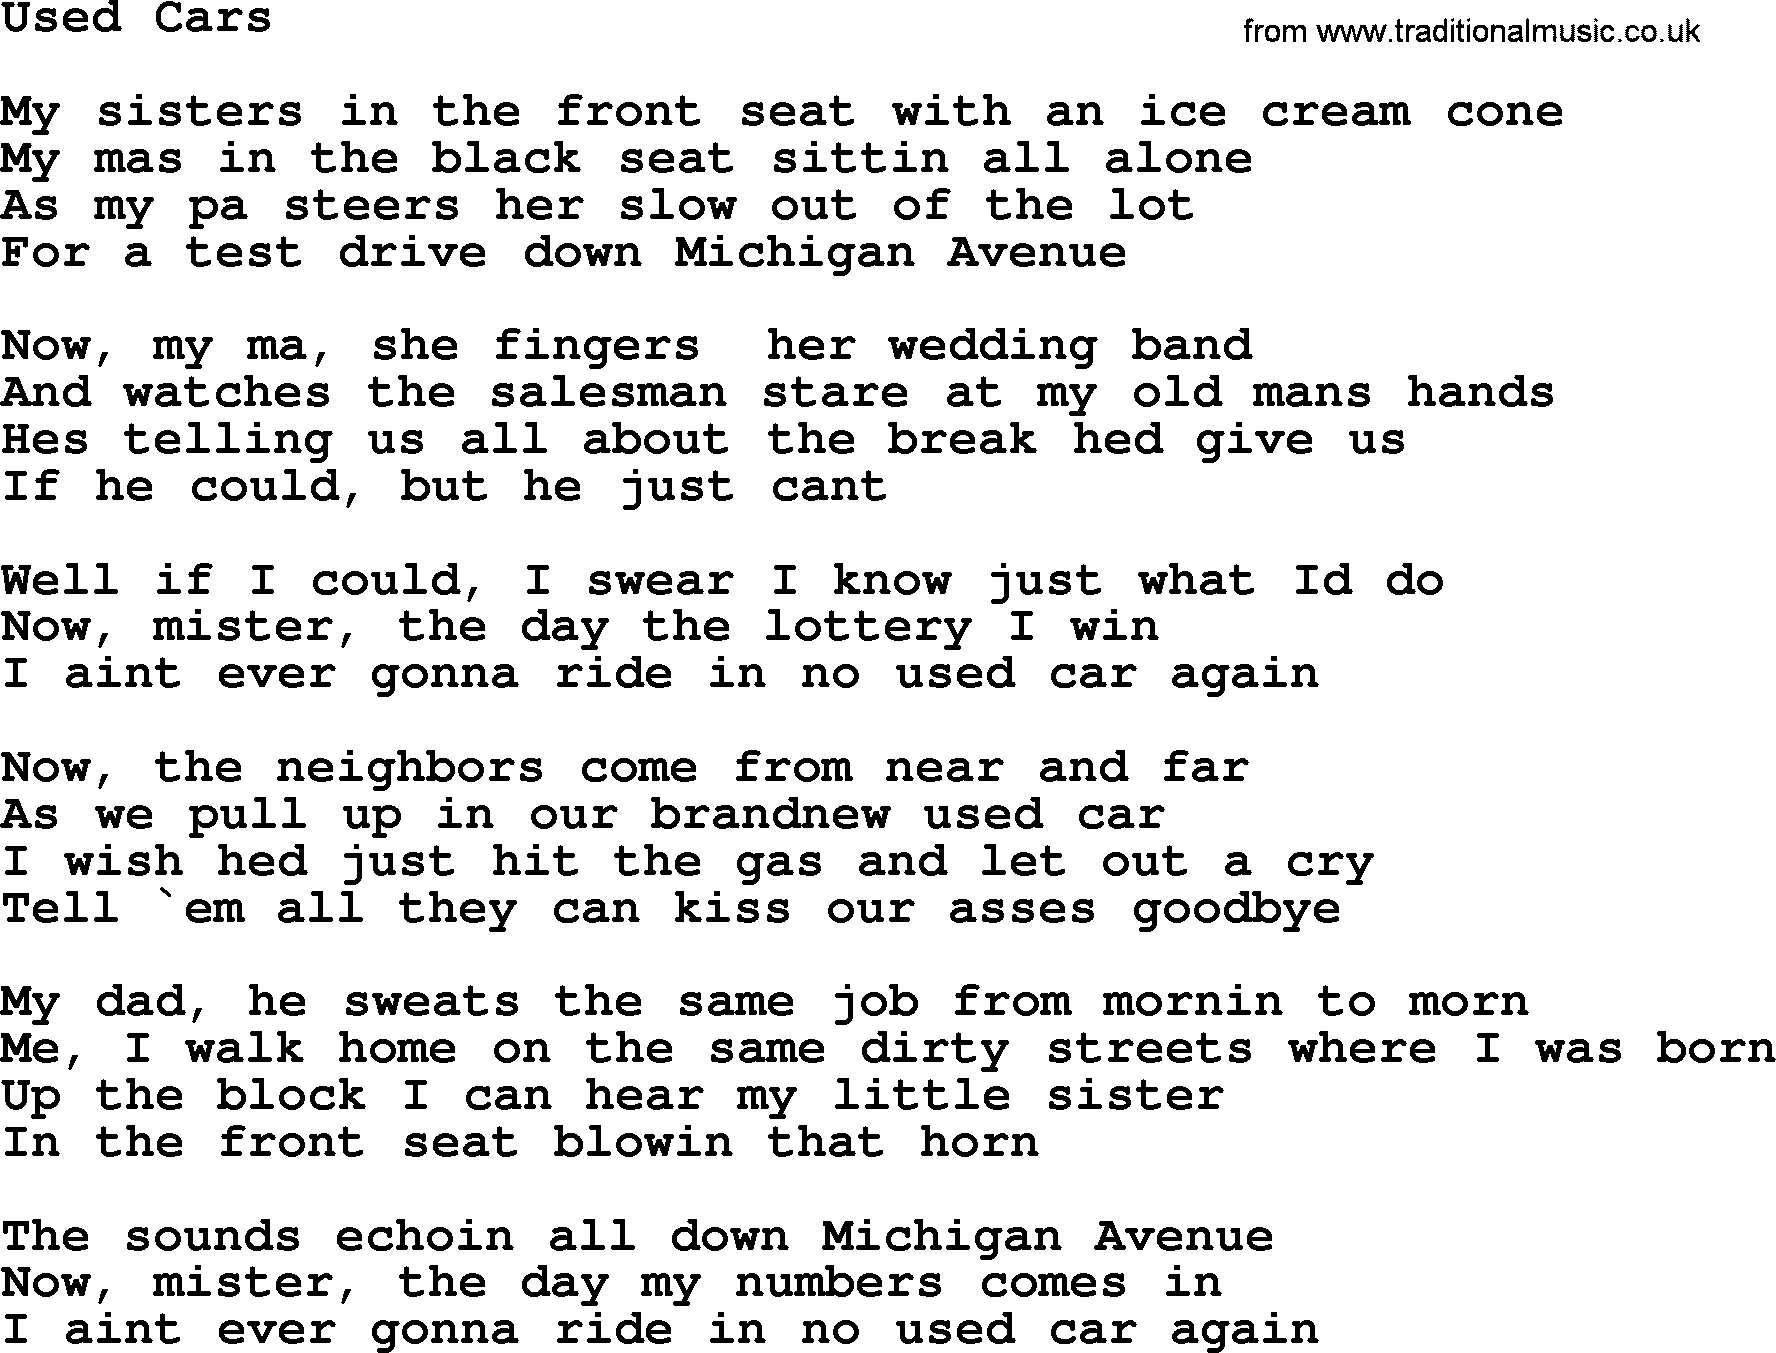 Bruce Springsteen Song: Used Cars, Lyrics